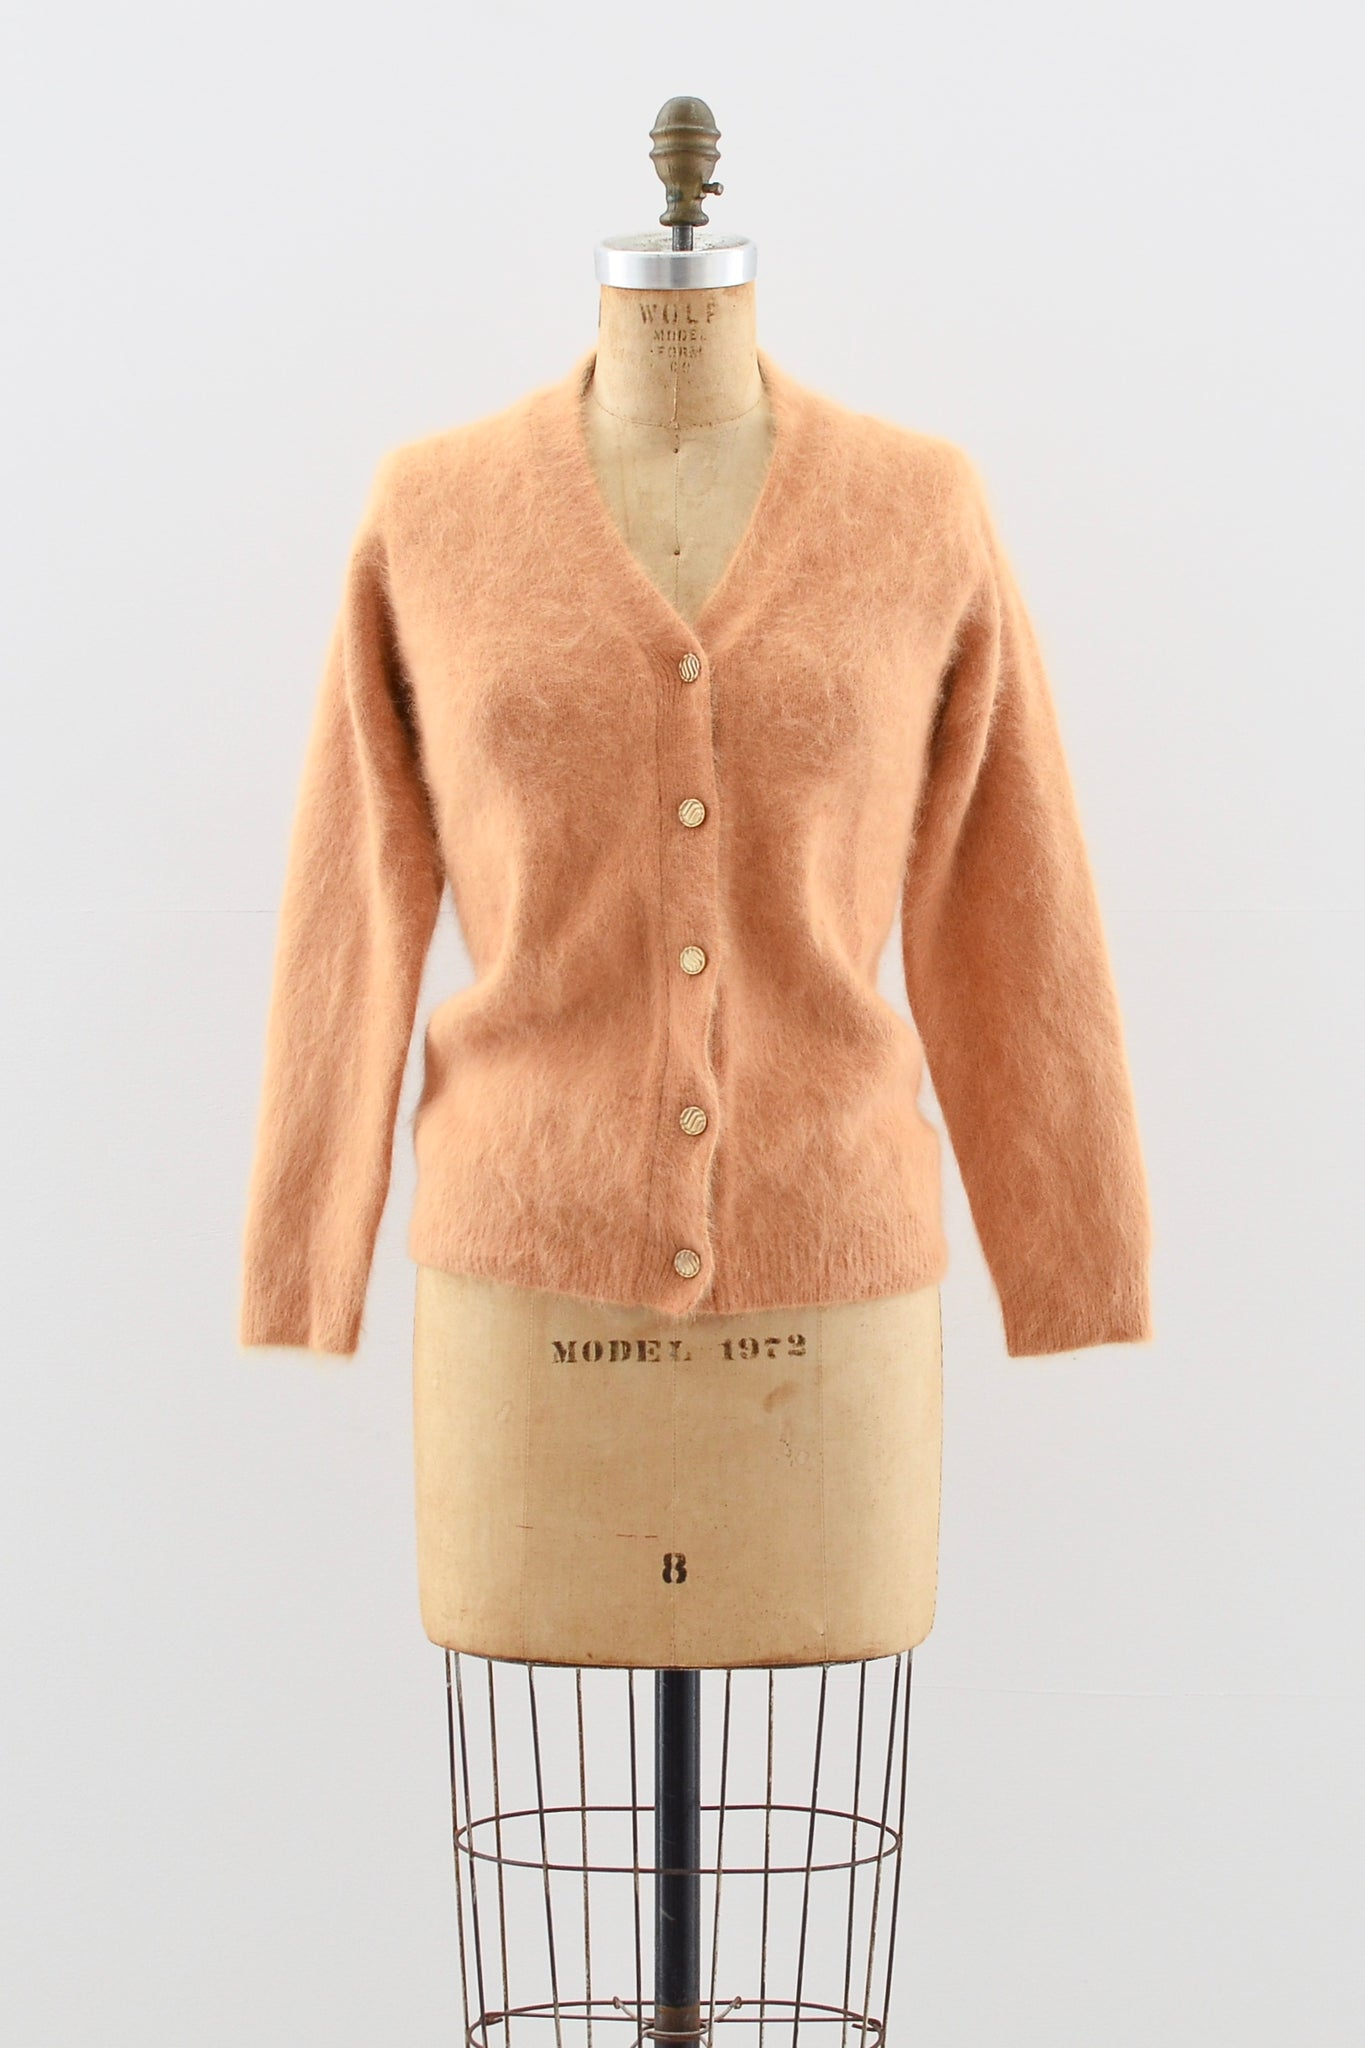 Orange Sorbet Angora Sweater - Pickled Vintage